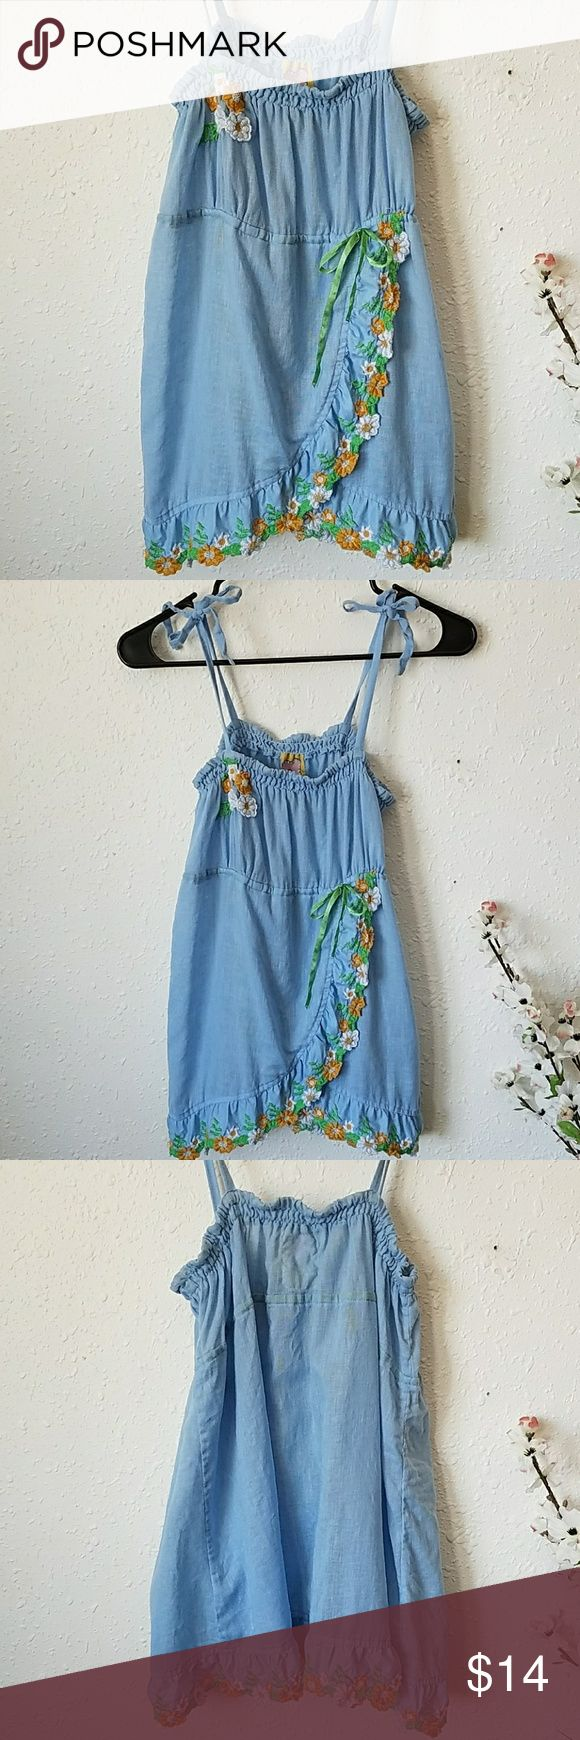 Free People Blue Linen Embroidered Smock Top Sz L Linen/Cotton Hippie Top by Free People Tie top  Overlay front  Embroidery on hem  Great condition  Smoke free home  Fast Shipping! Free People Tops